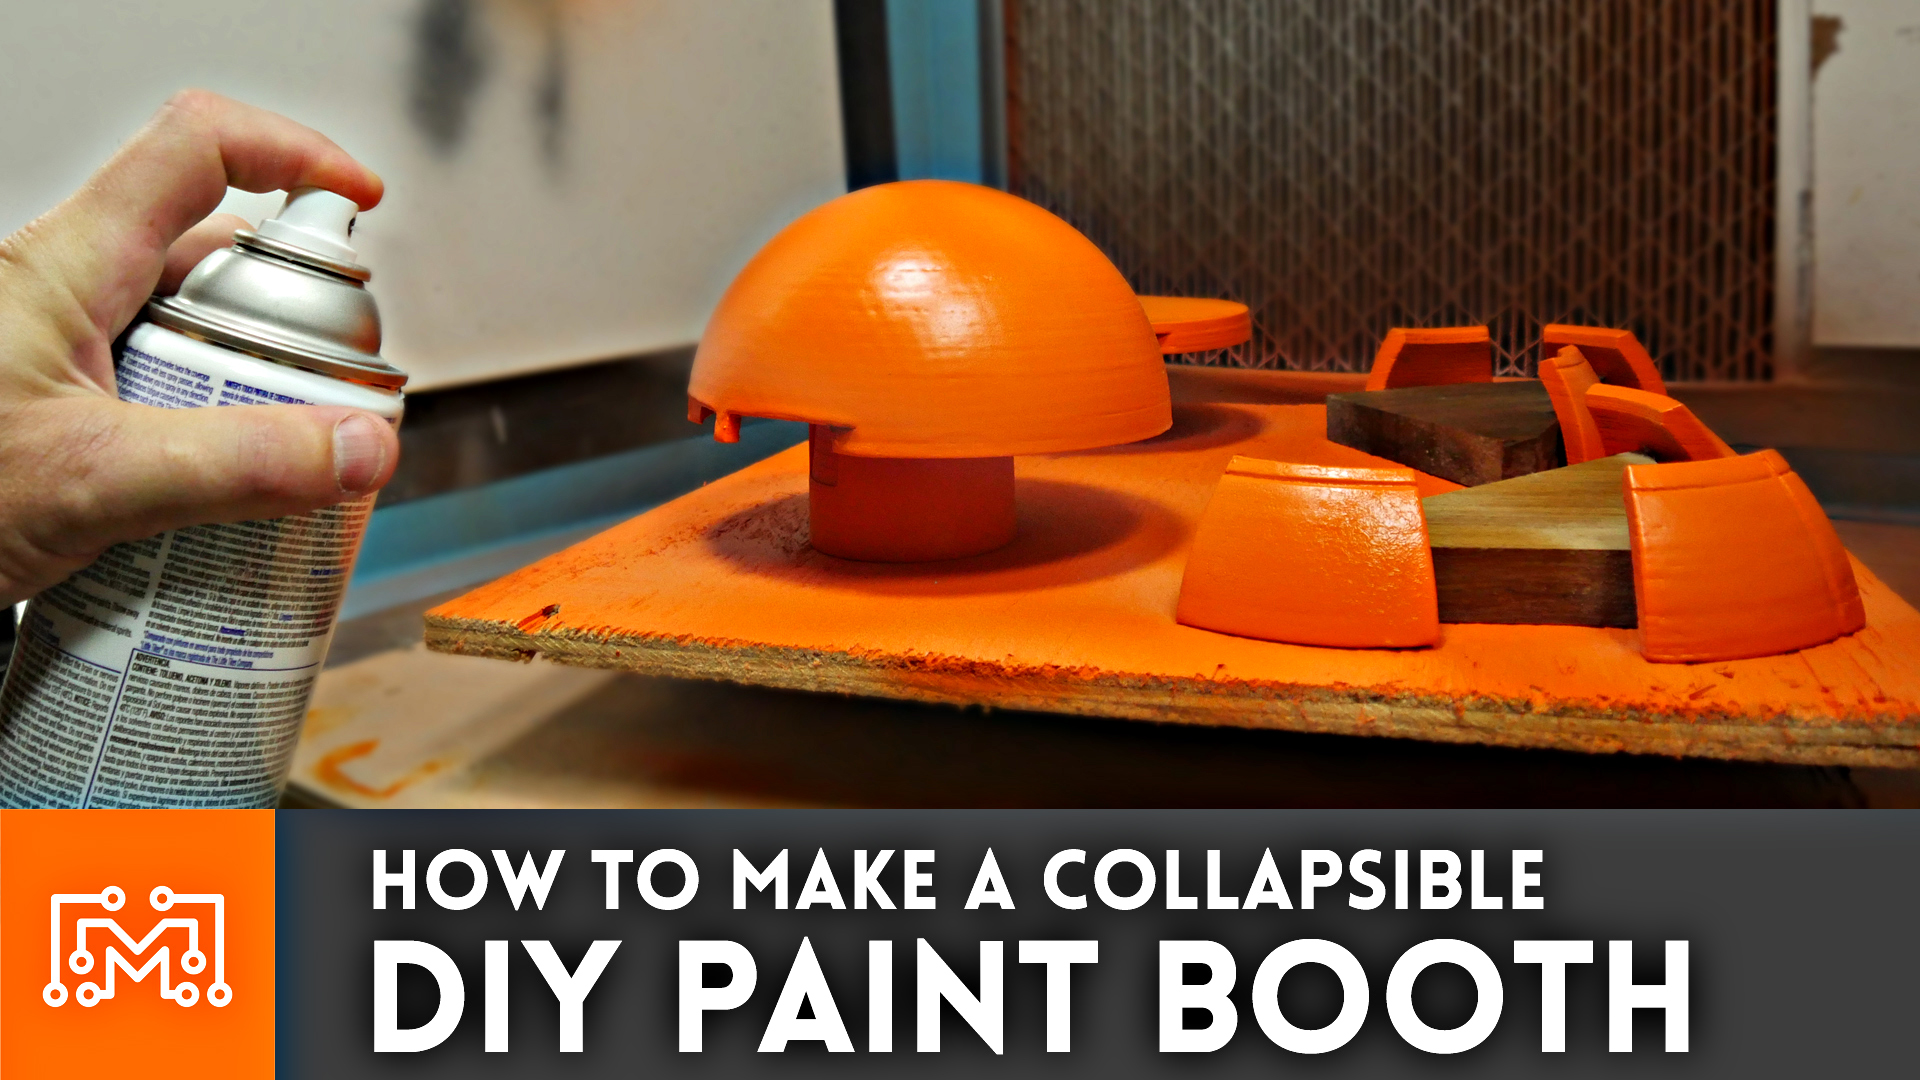 How To Make A Diy Paint Booth I Like To Make Stuff